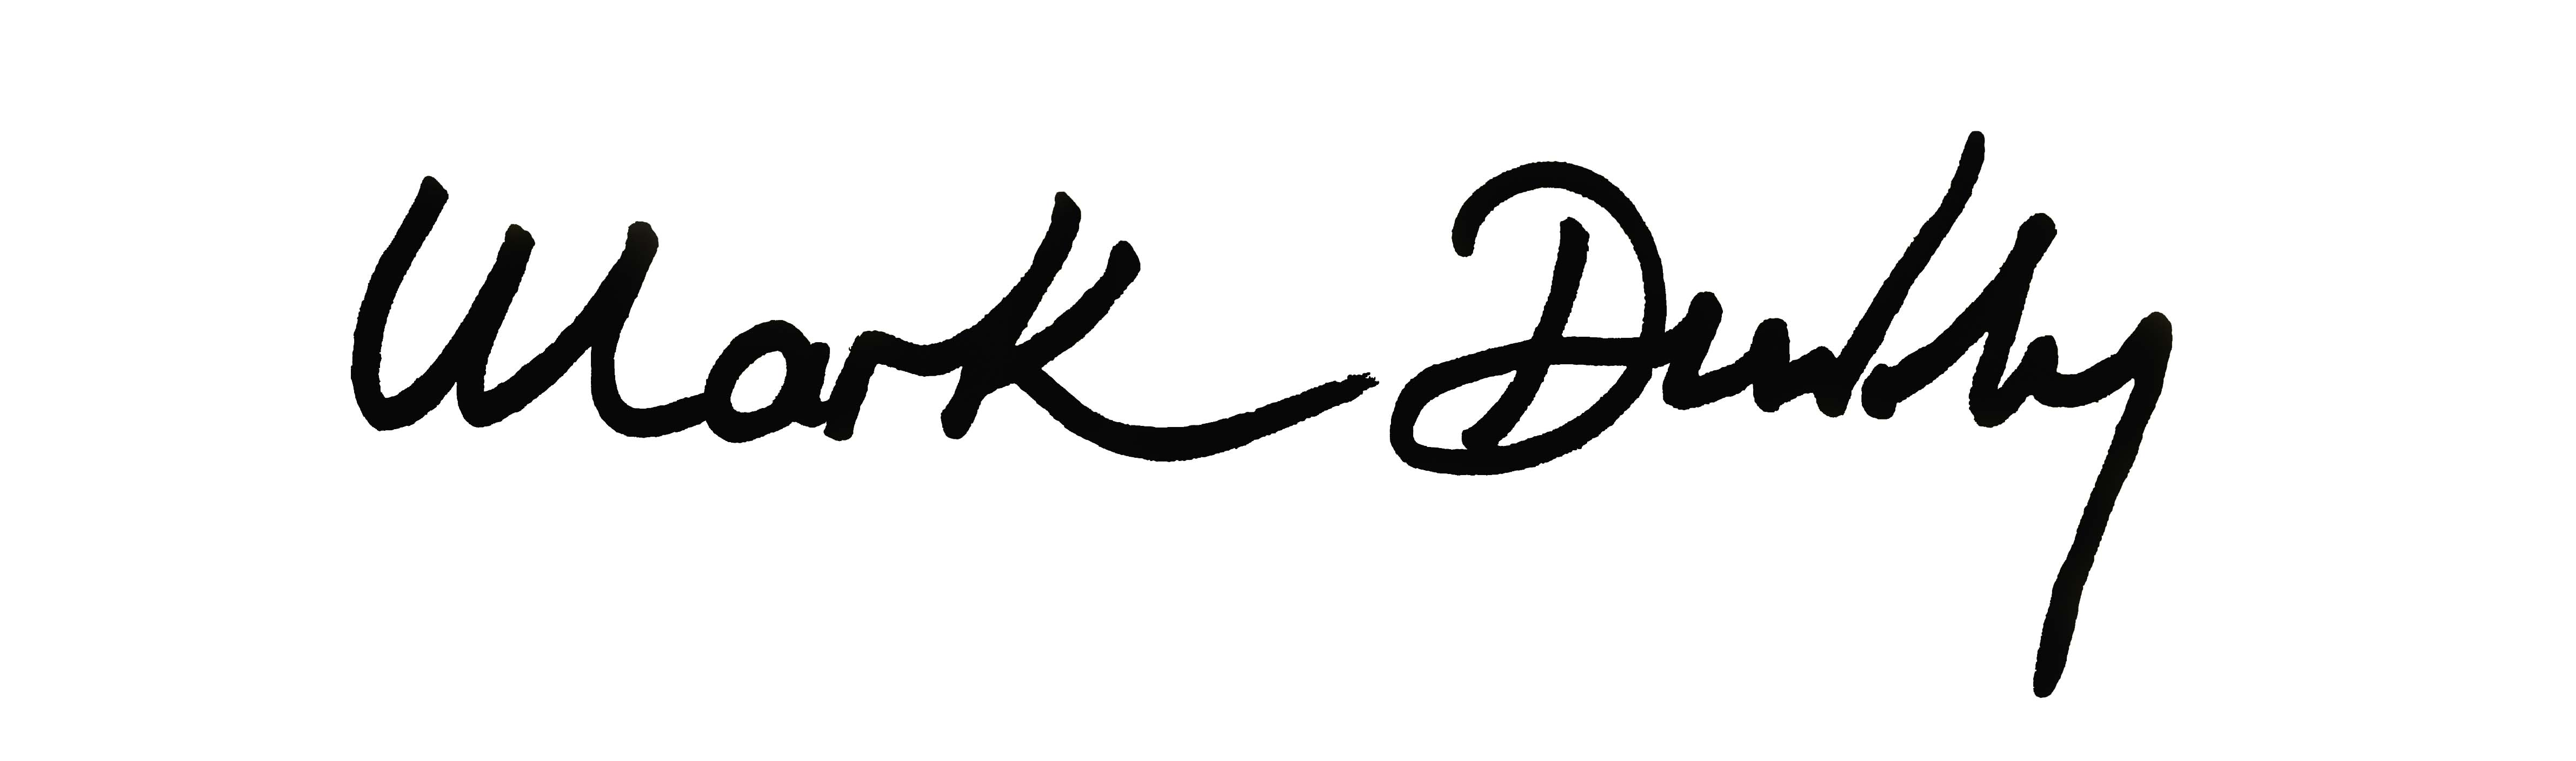 Mark Duffy Signature